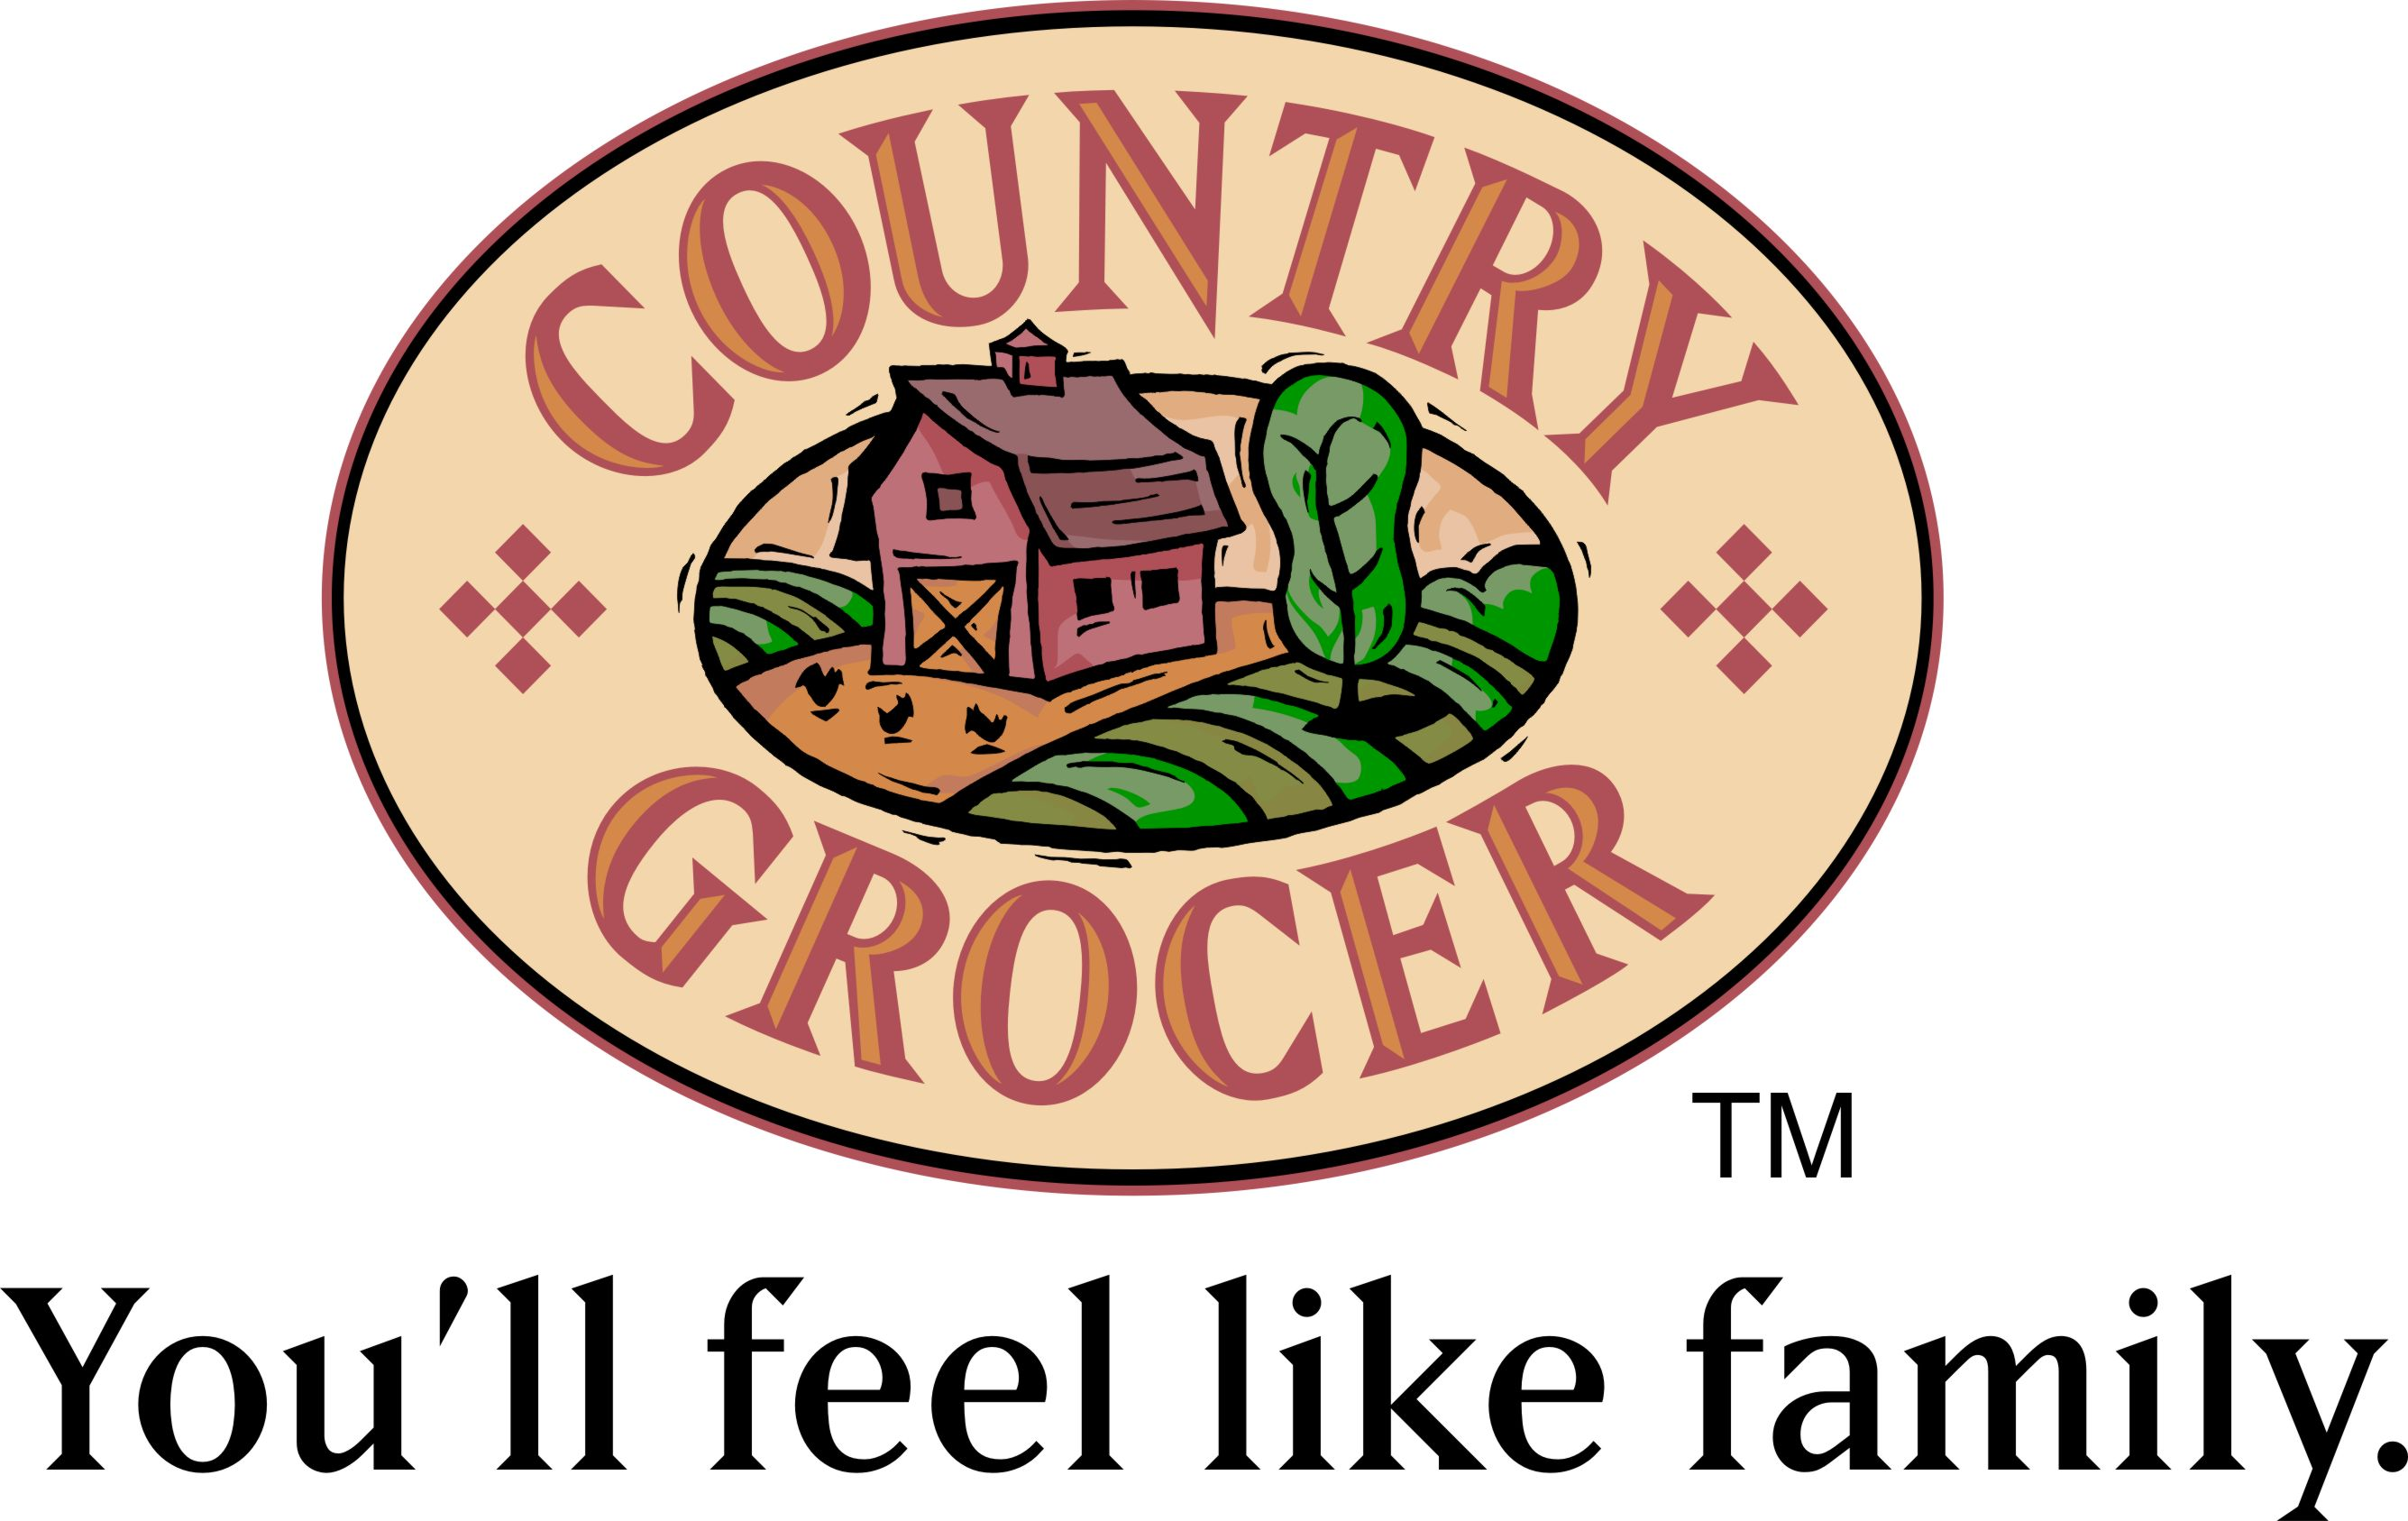 2. Country Grocer